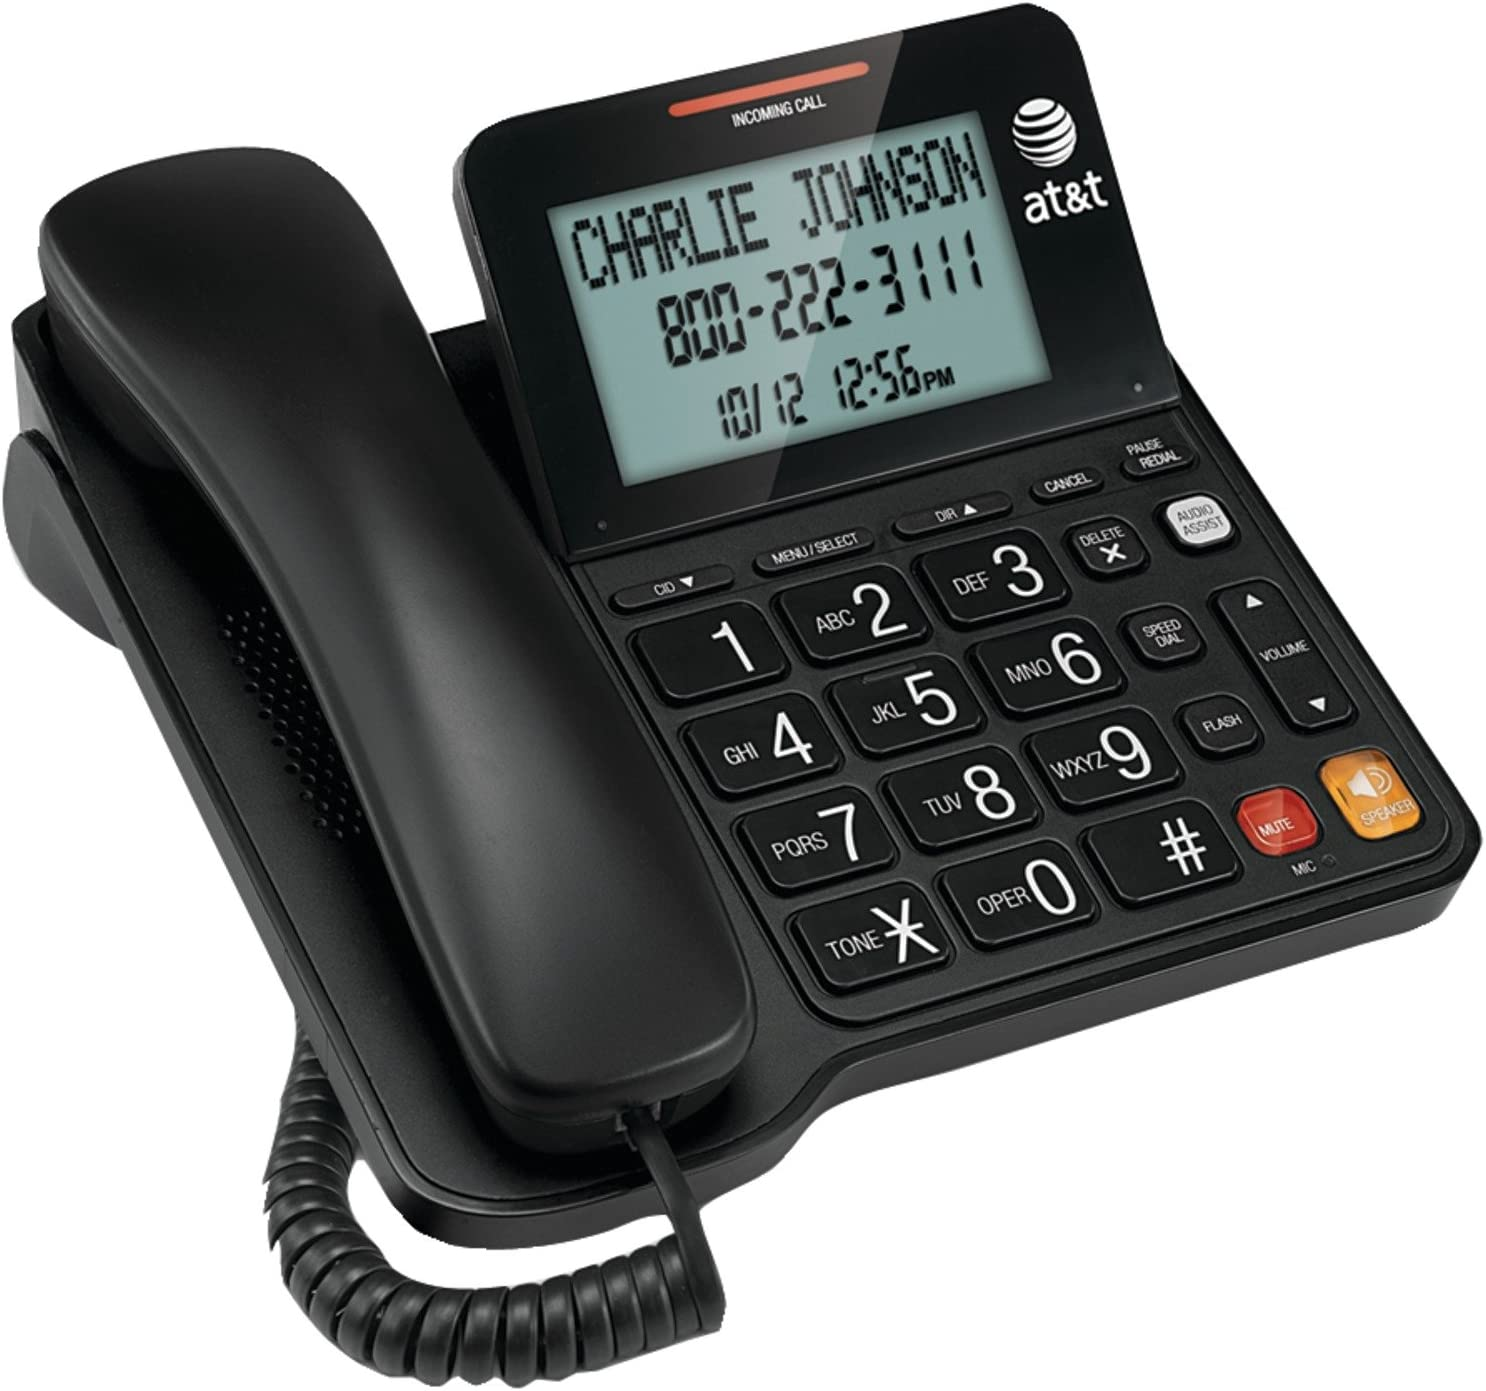 AT&T CL2940 Corded Speakerphone with Large Tilt Display